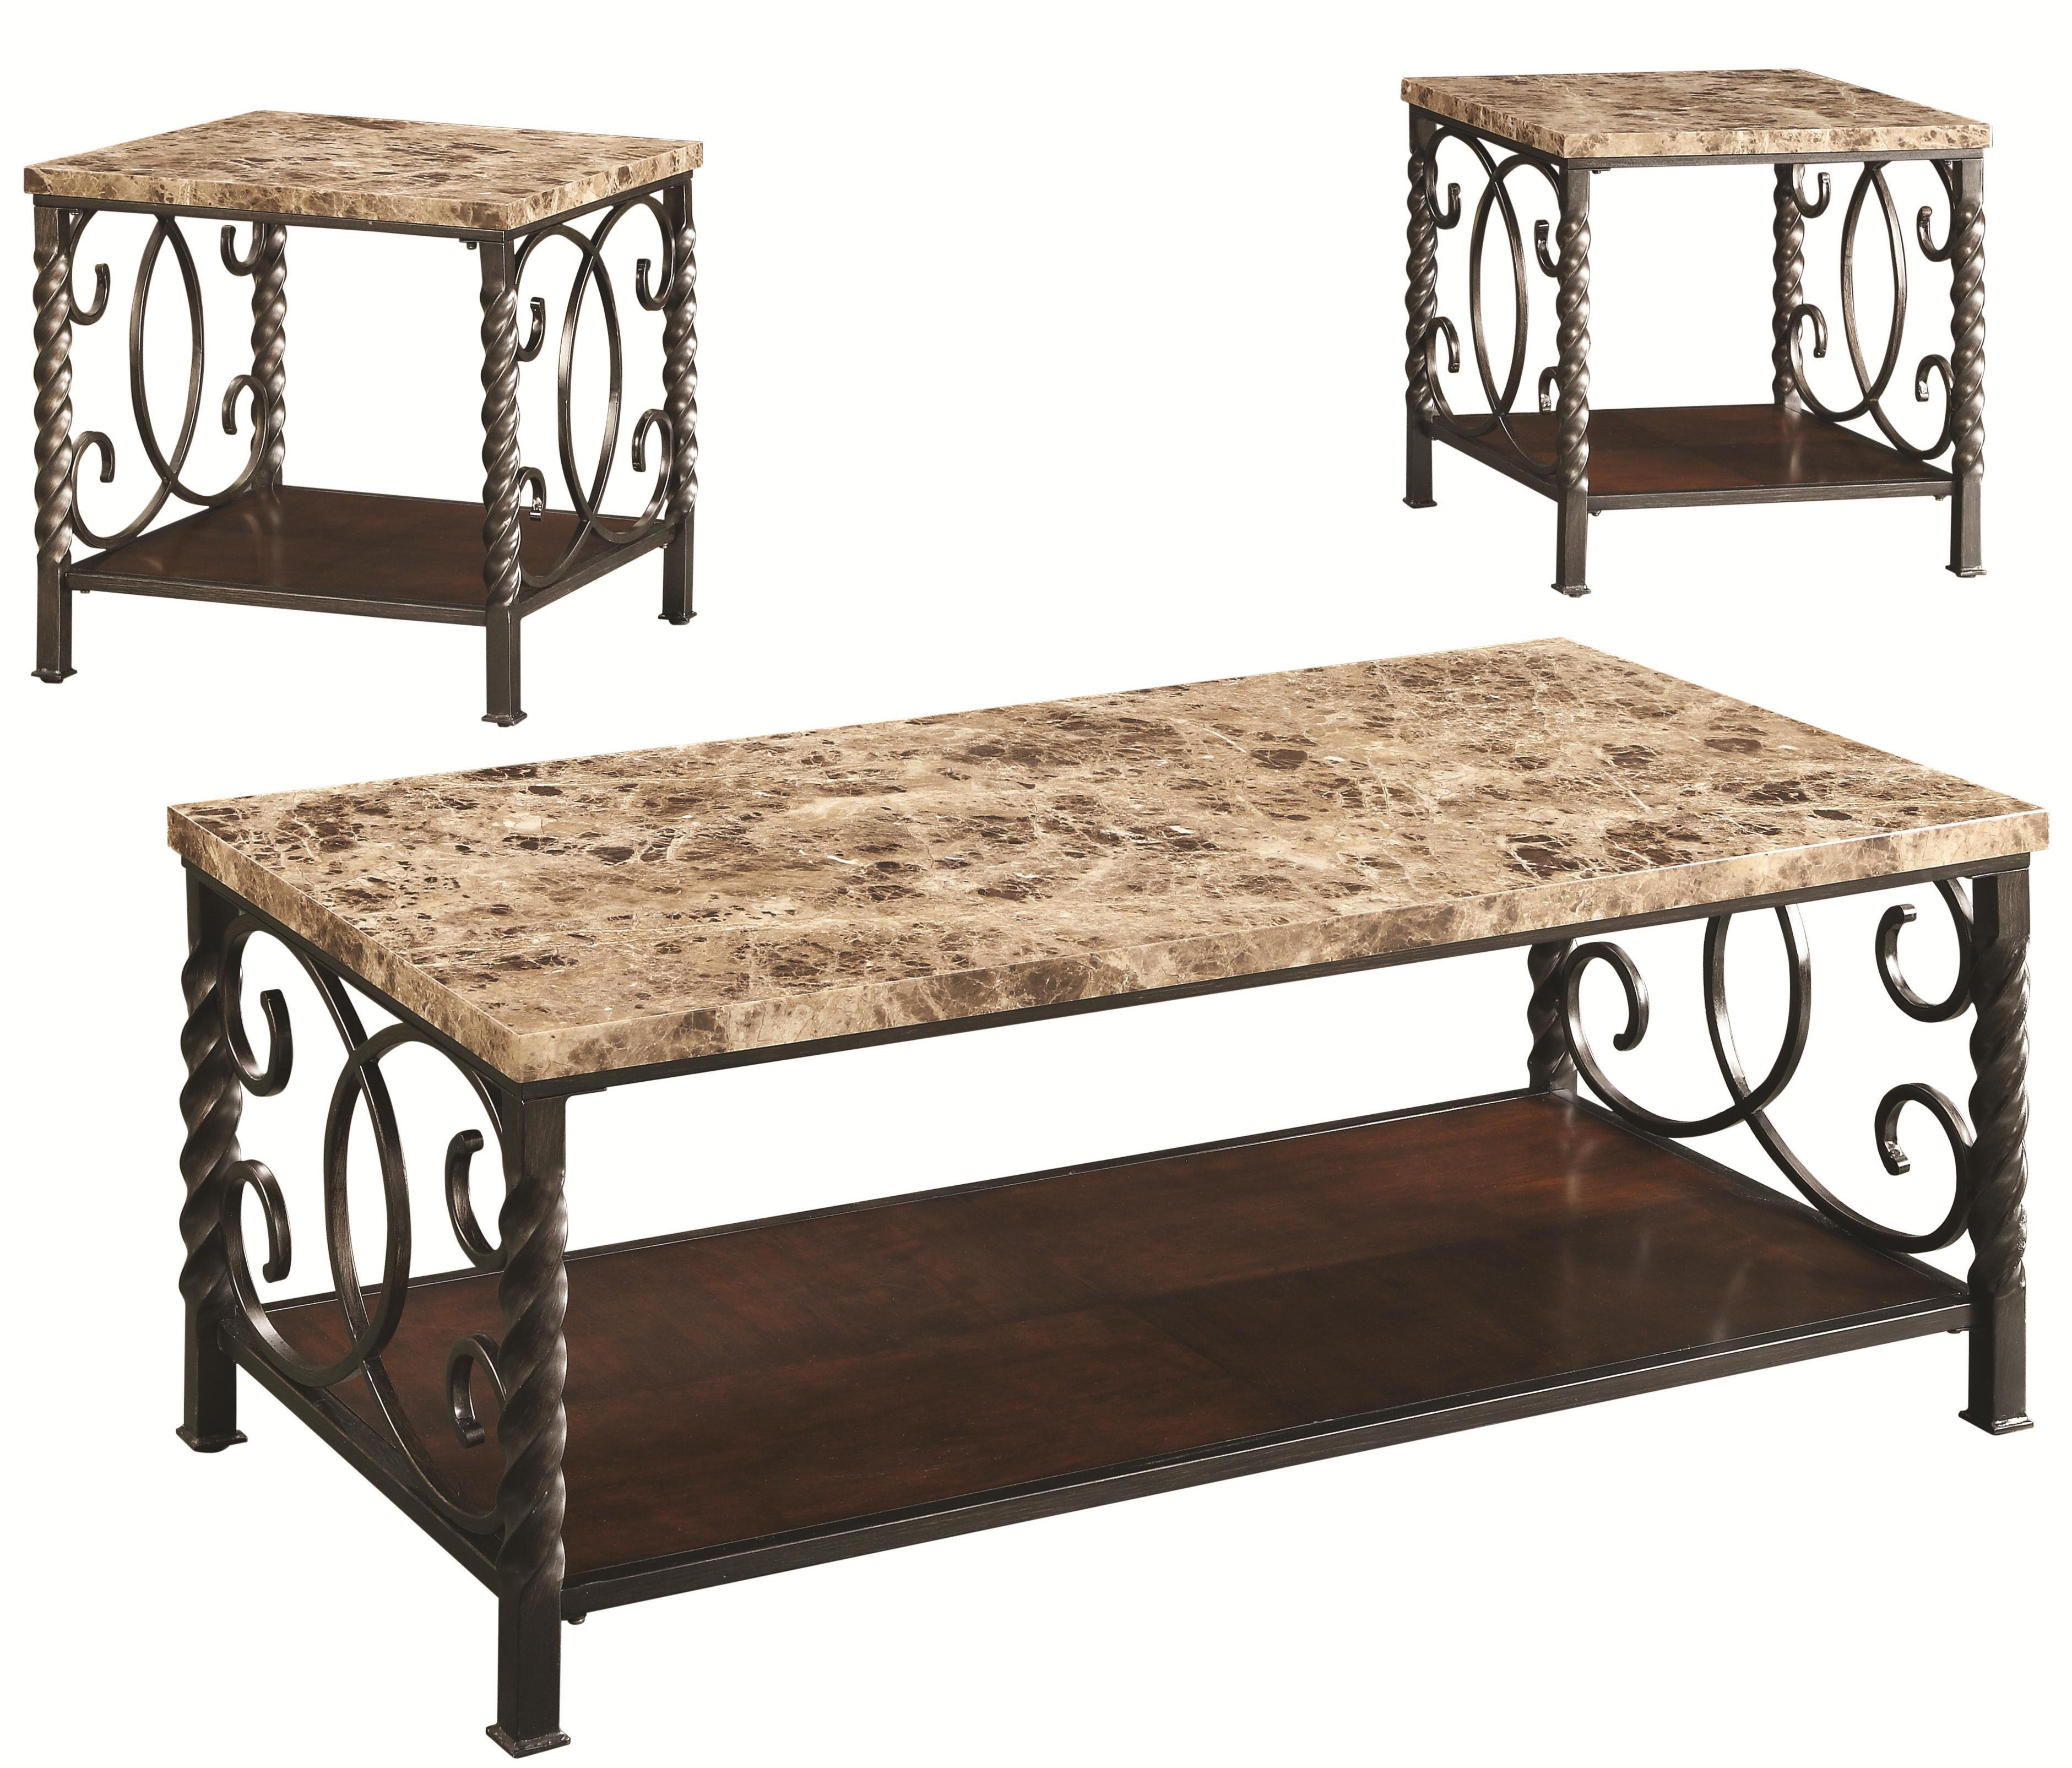 701695 3pc occasional set w/ faux marble top